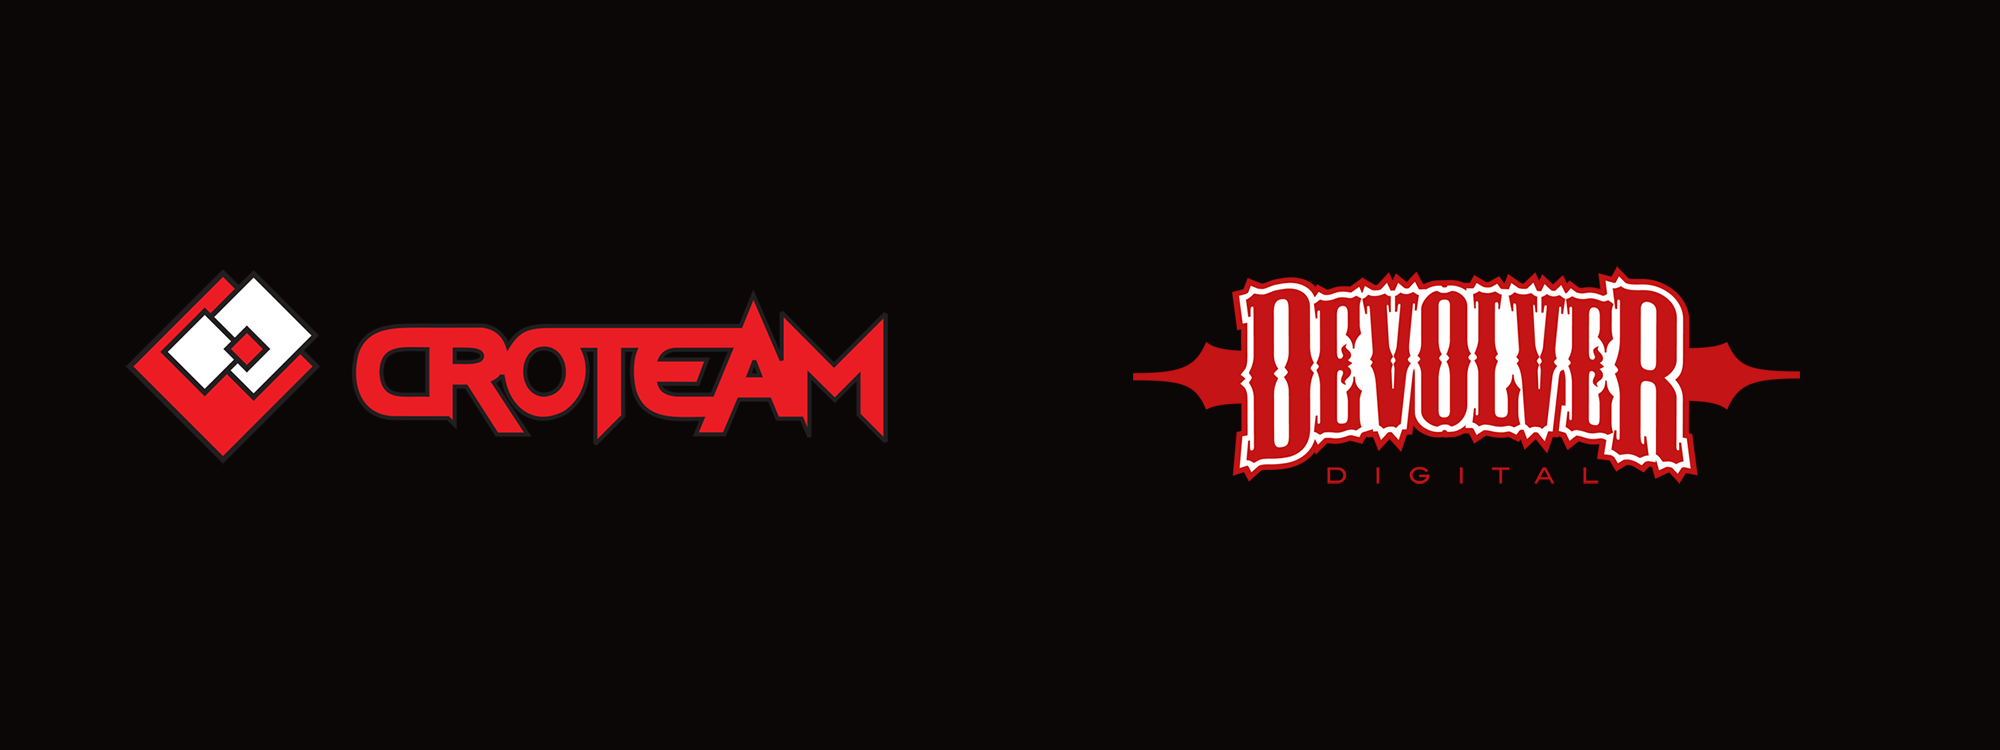 Издательство Devolver Digital купило студию Croteam, известную по Serious Sam